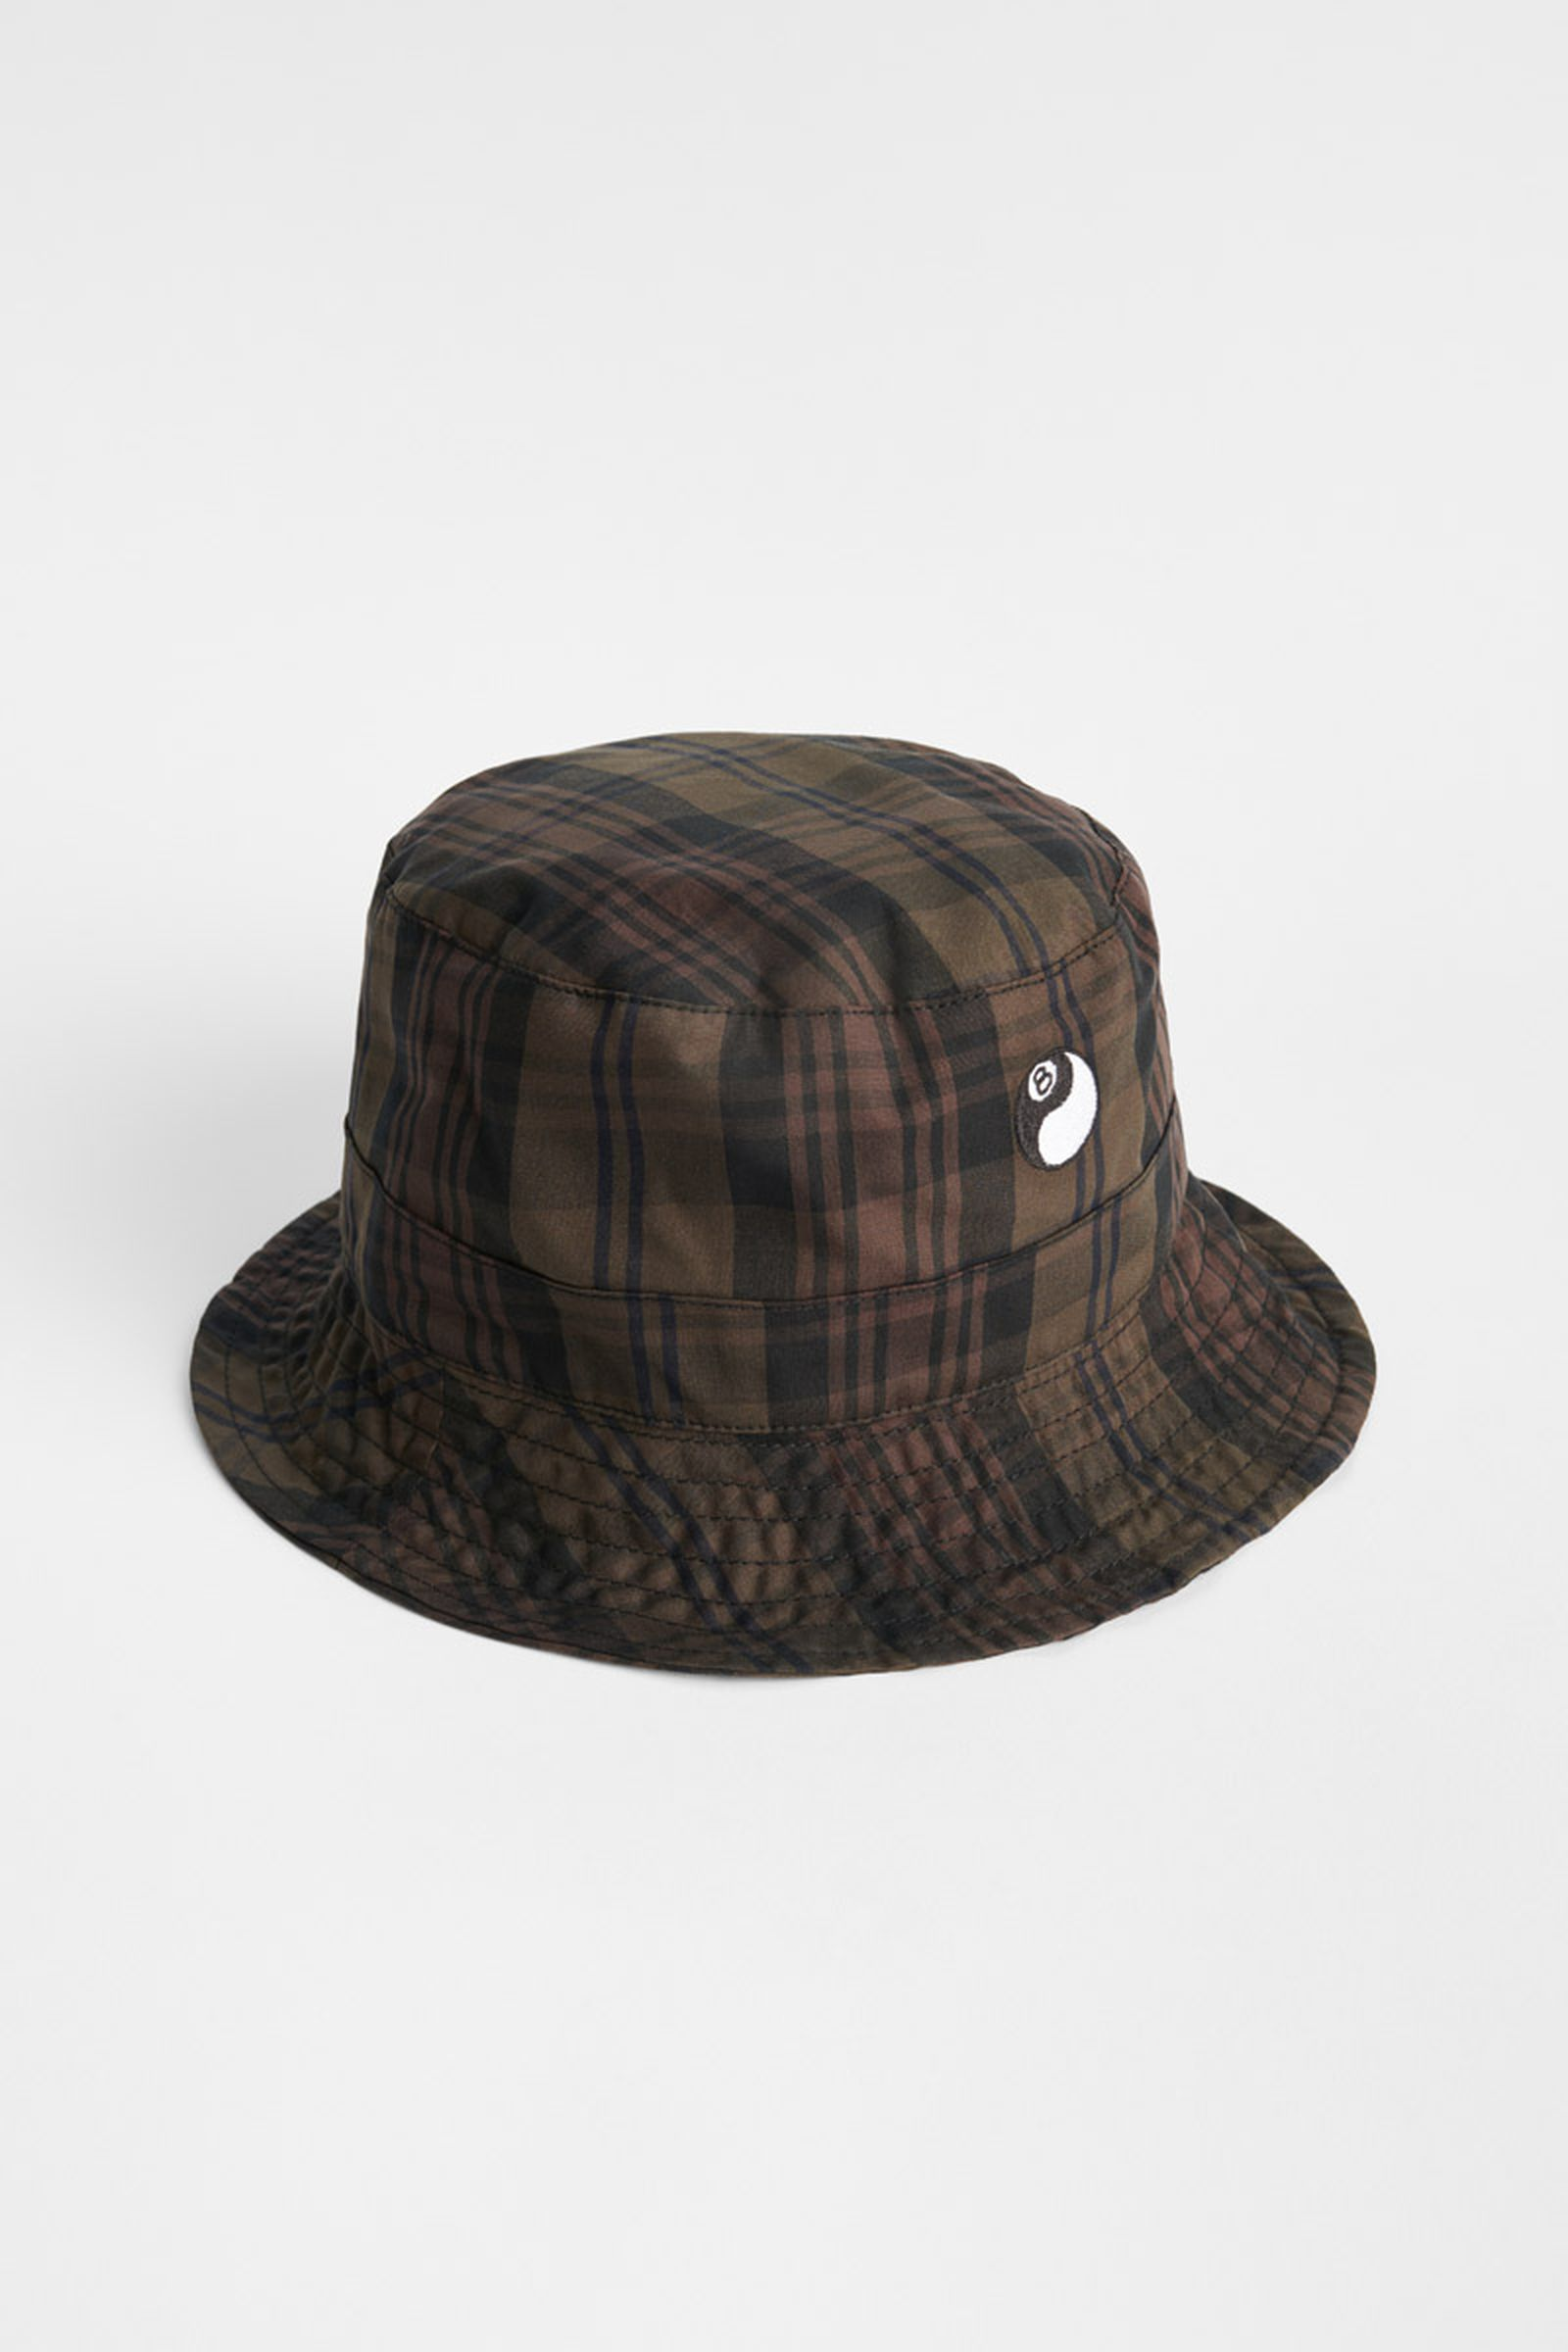 AS208BBP_BUCKET HAT_BROWN PLAID_UPRIGHT